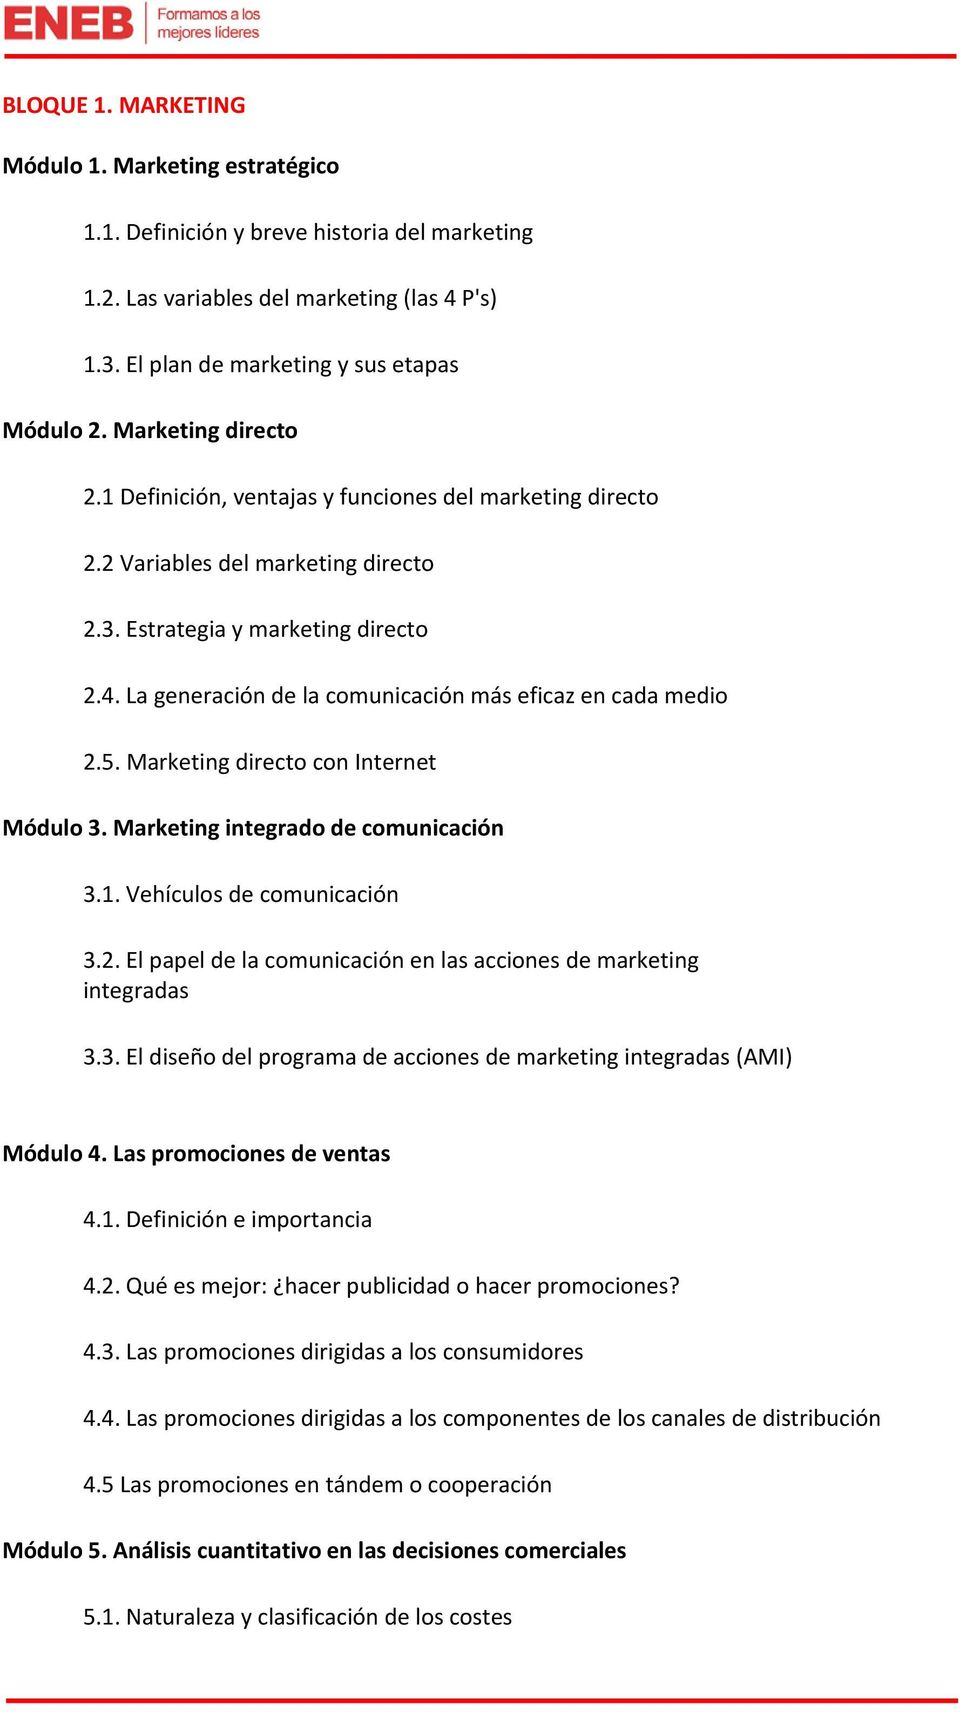 La generación de la comunicación más eficaz en cada medio 2.5. Marketing directo con Internet Módulo 3. Marketing integrado de comunicación 3.1. Vehículos de comunicación 3.2. El papel de la comunicación en las acciones de marketing integradas 3.